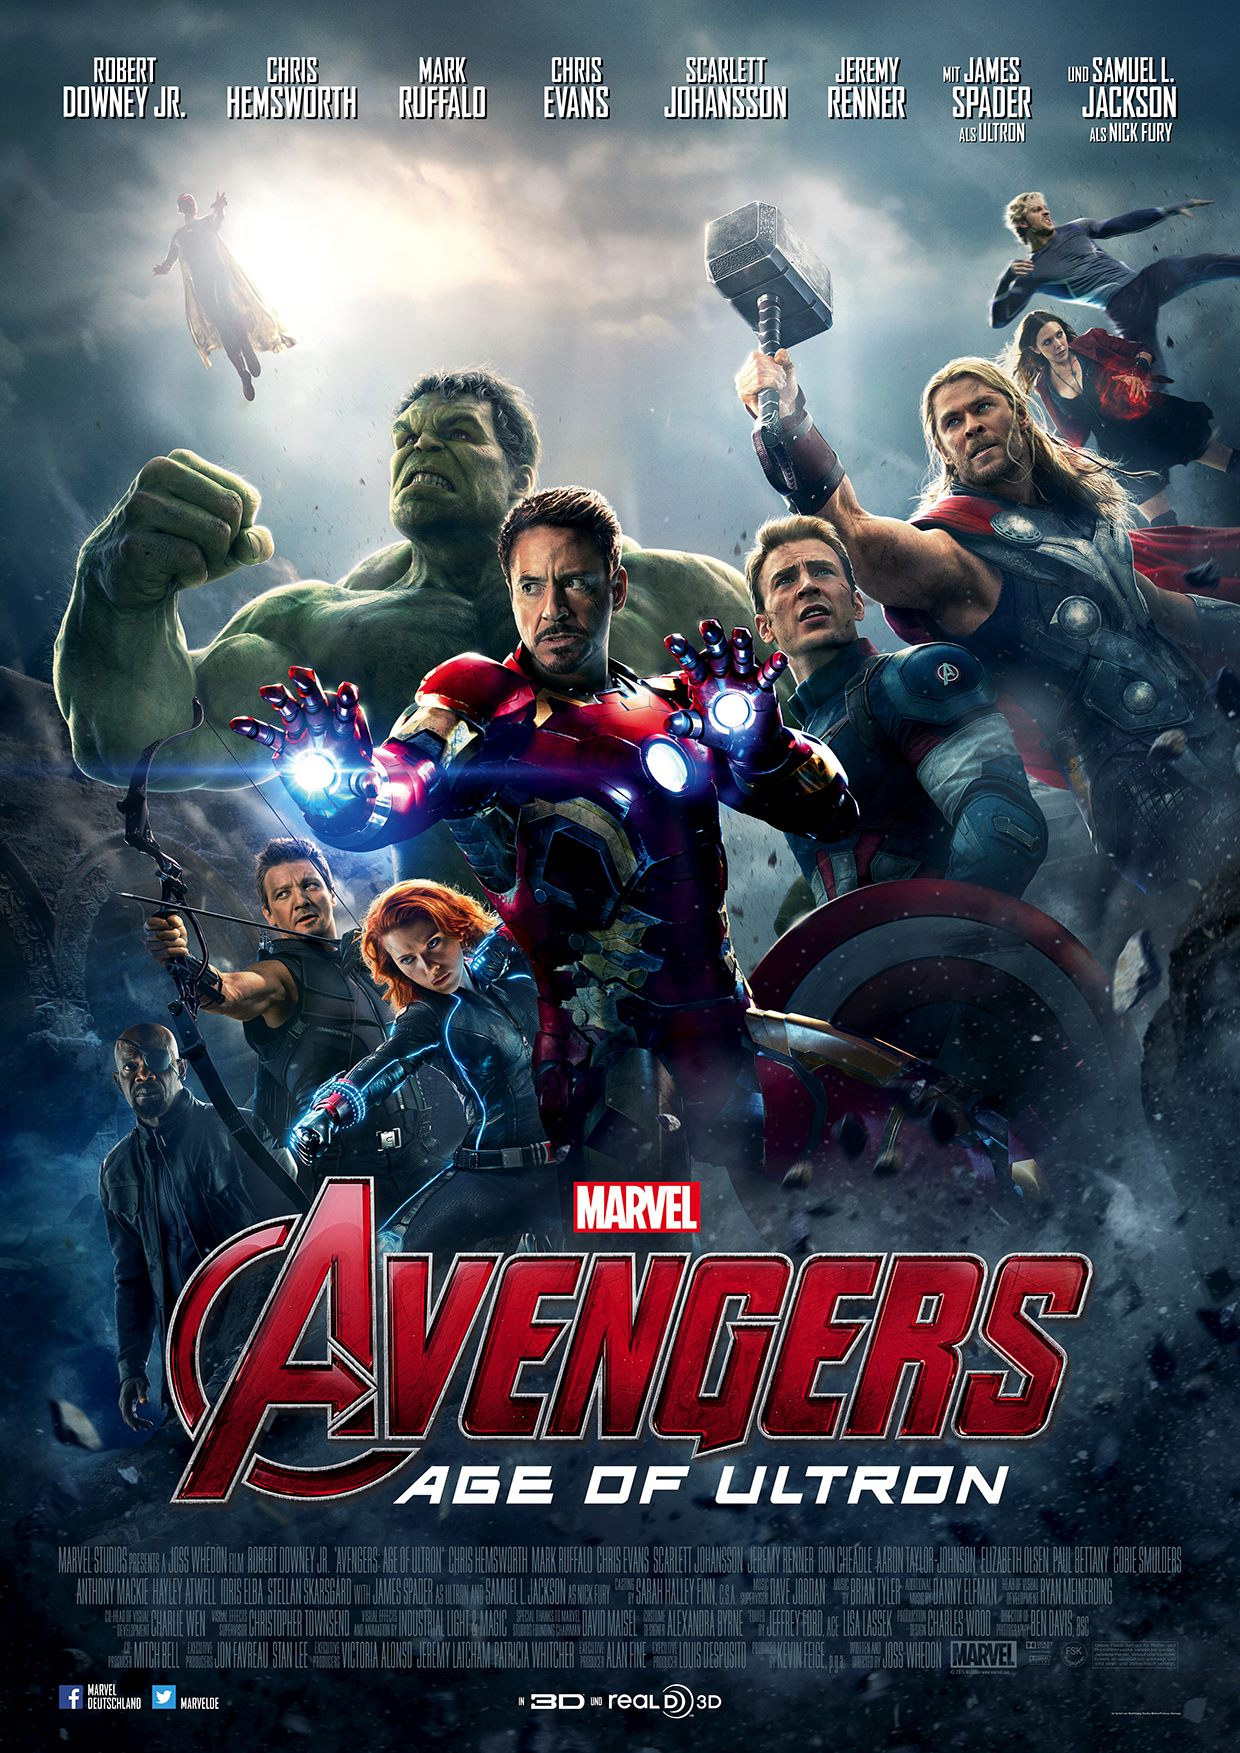 Avengers age of ultron 2015 720p hd hindi dubbed torrent avengers age of ultron 2015 720p hd hindi dubbed download torrent voltagebd Choice Image